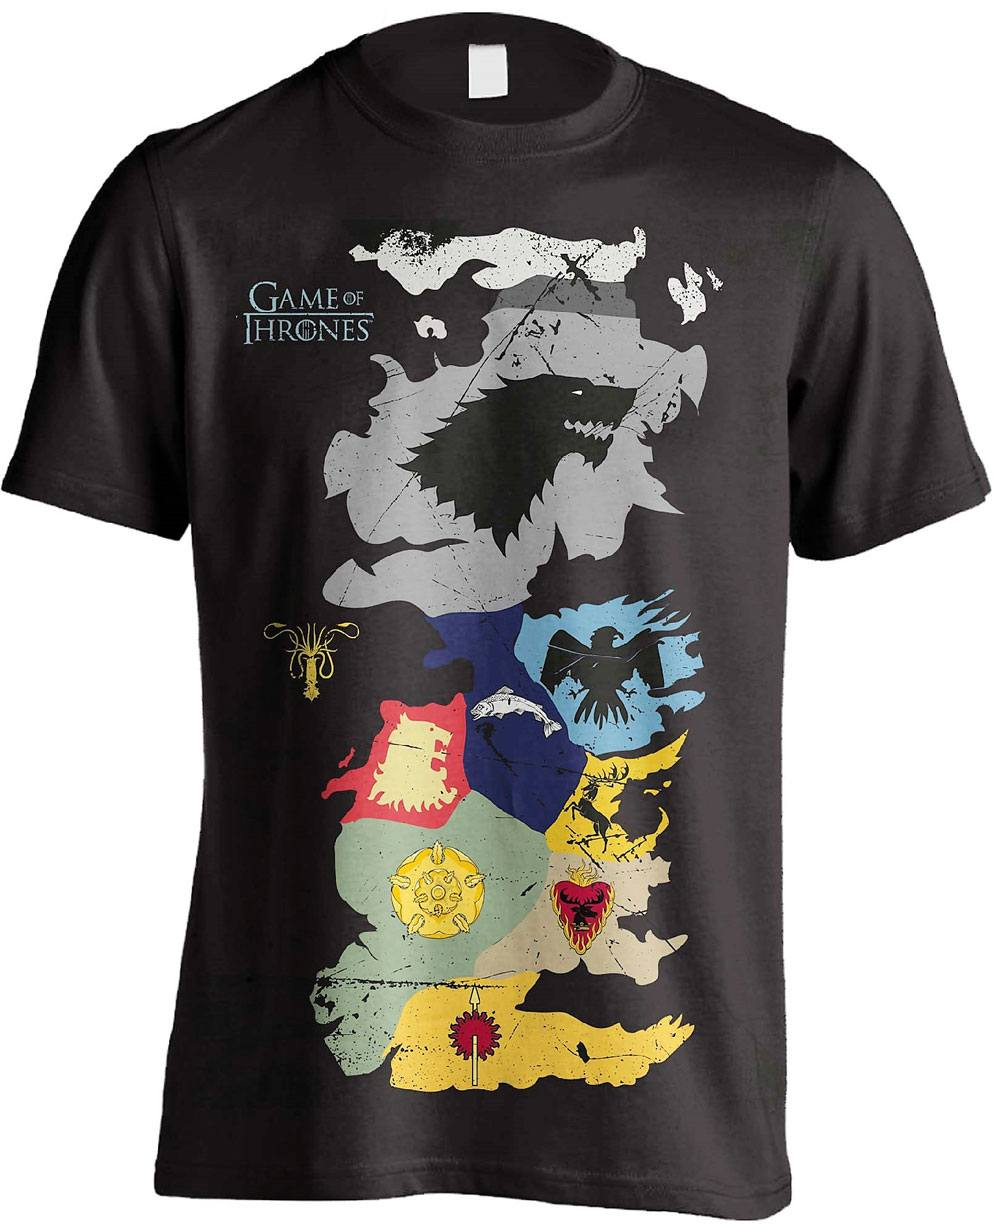 Game of Thrones T-Shirt Westeros Sigils Map Size M